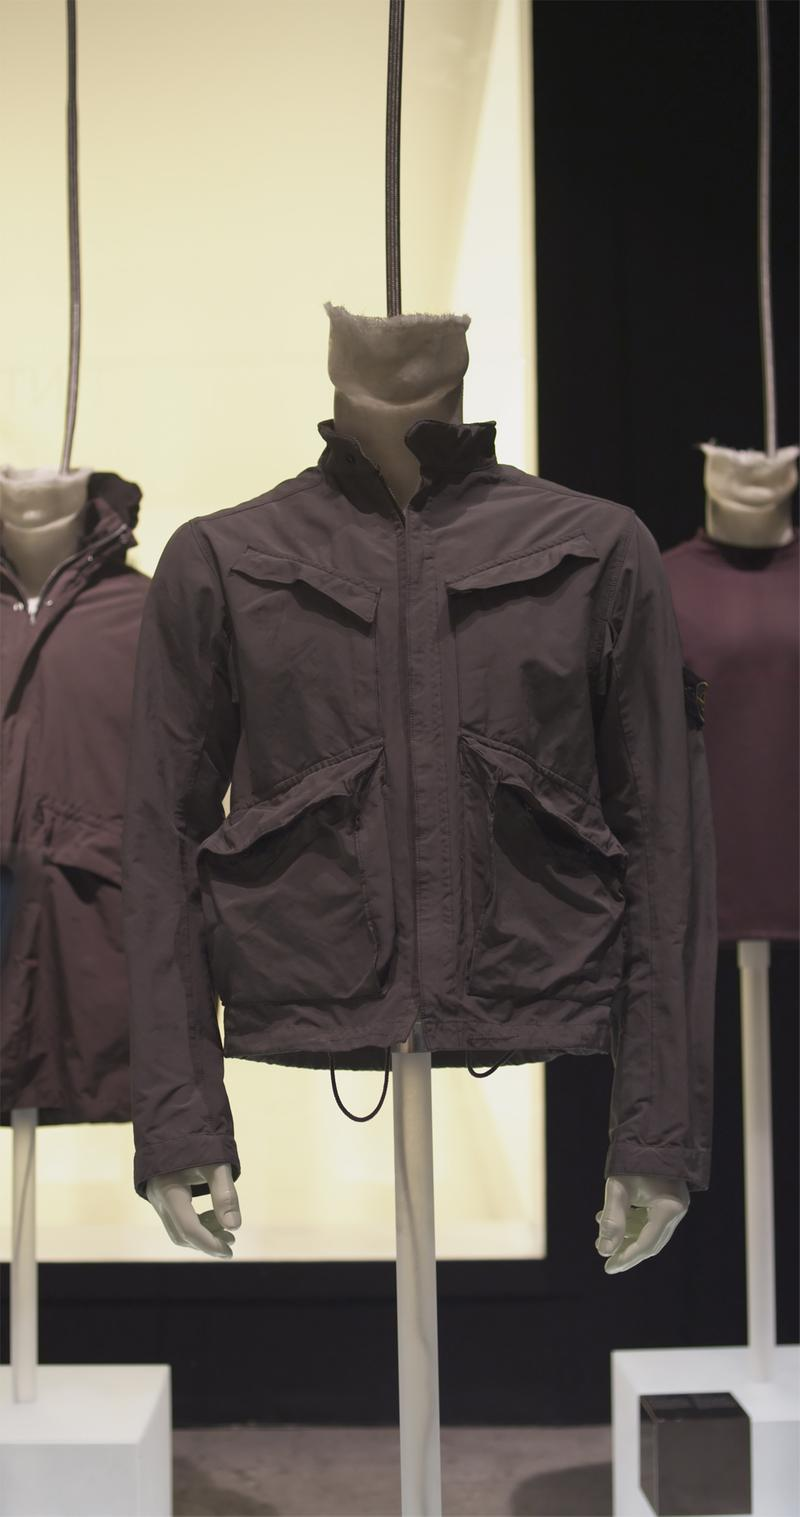 Dark colored jacket with zipper closure and four flap pockets, displayed on a mannequin bust